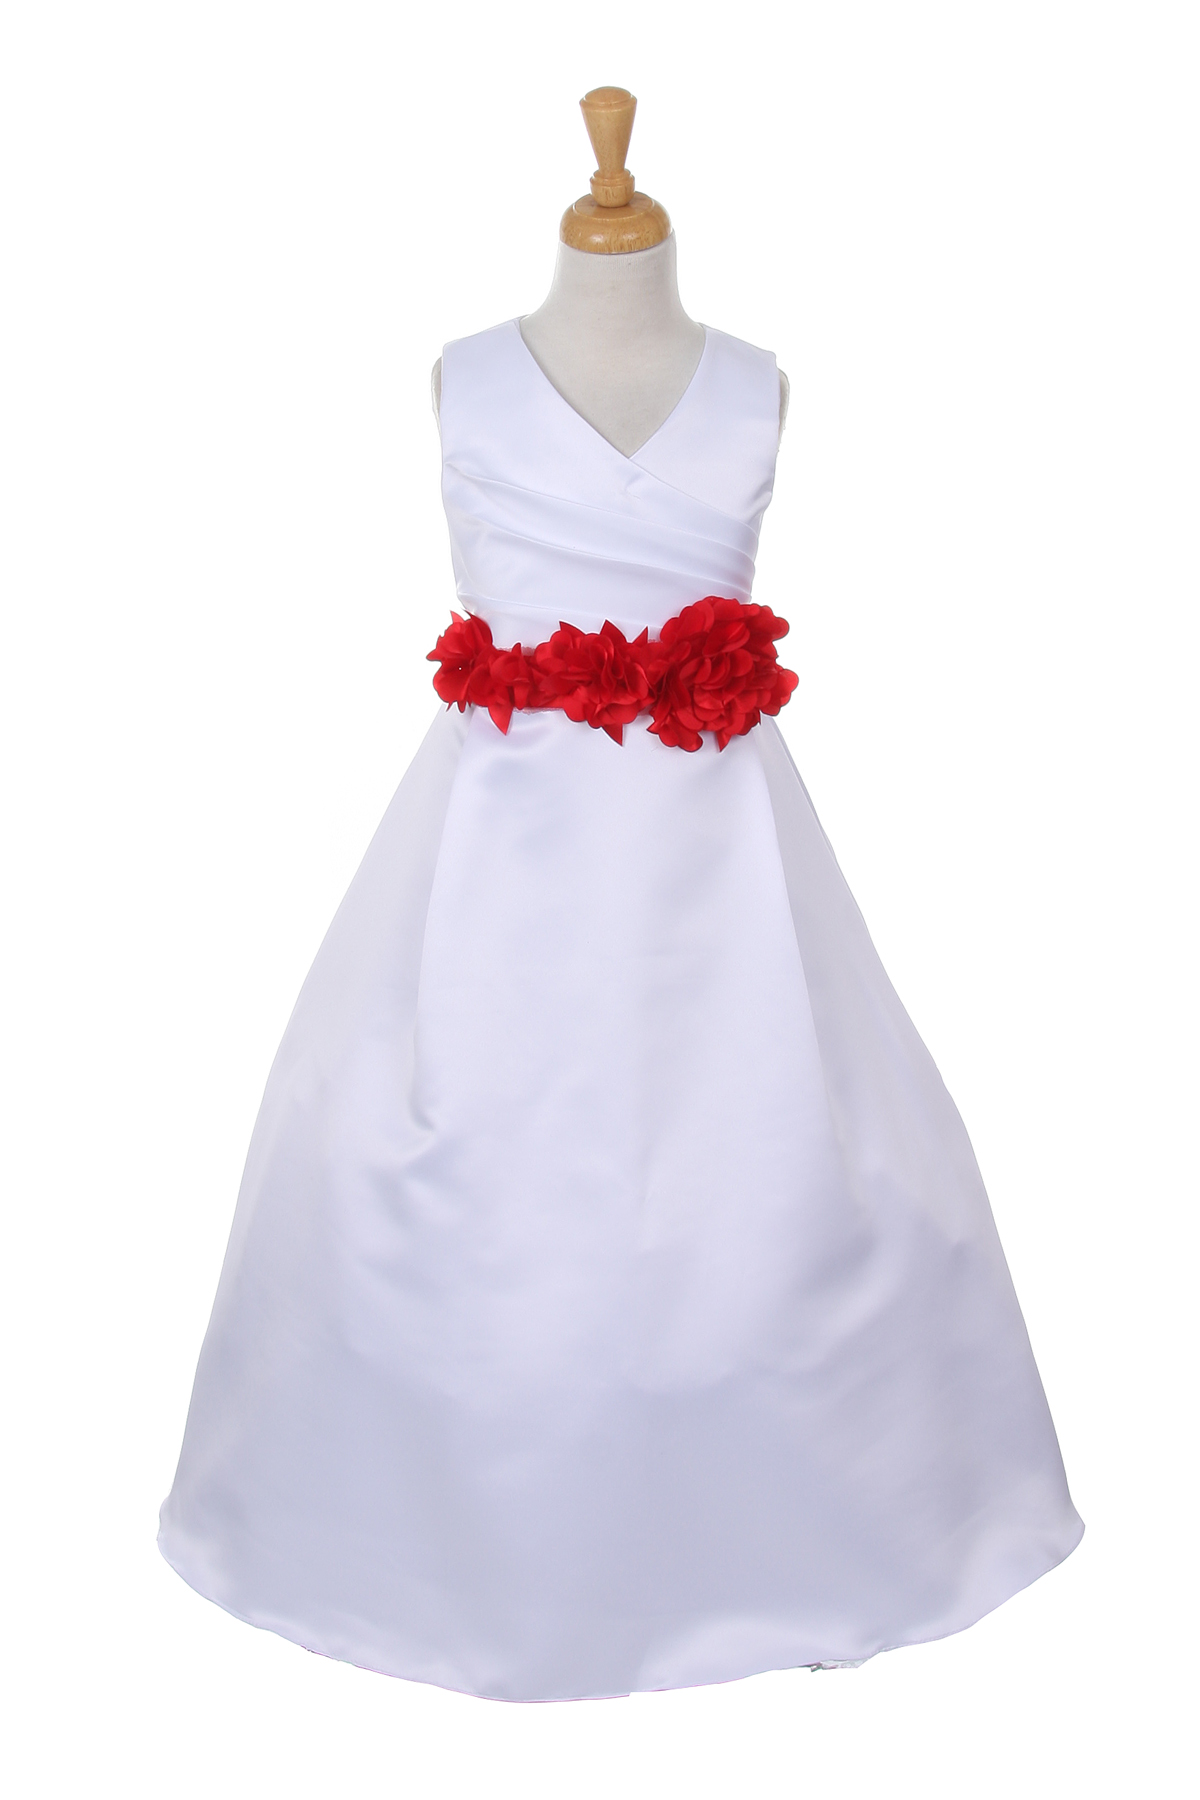 white dress with red flower sash